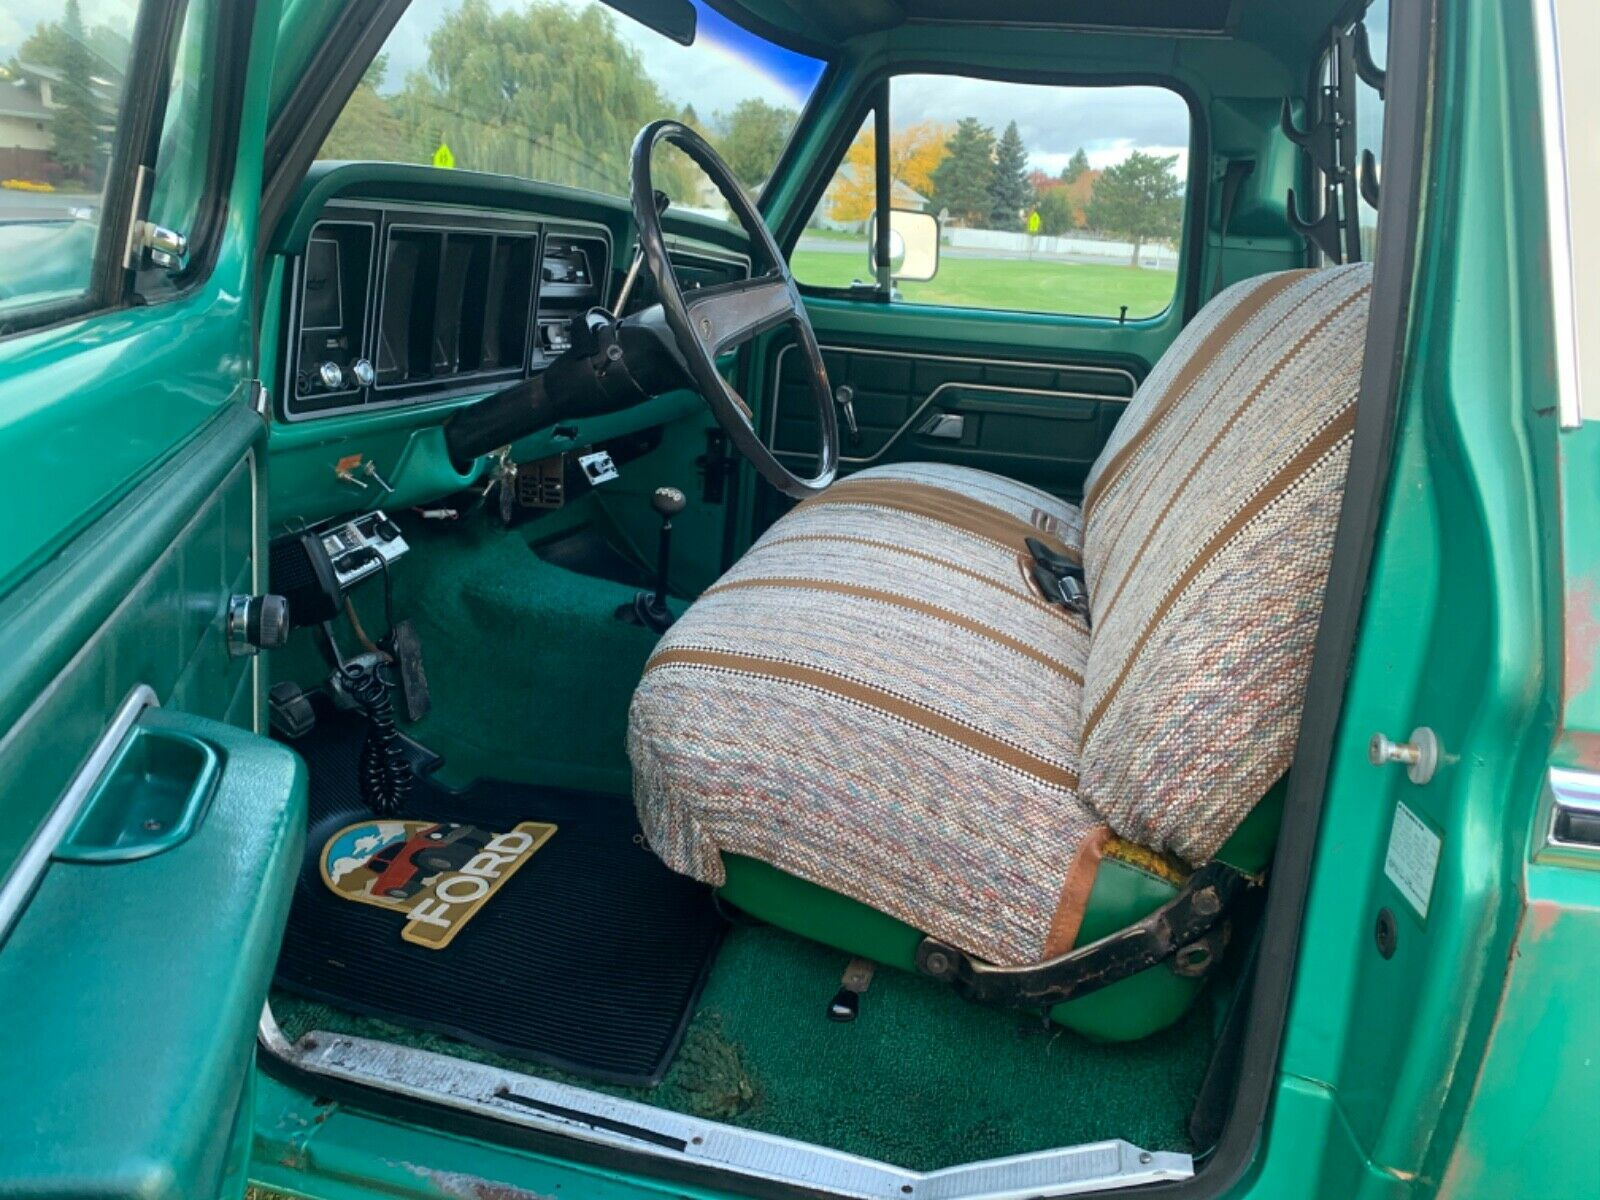 Craigslist find of the week! - Page 252 - Ford Truck ...